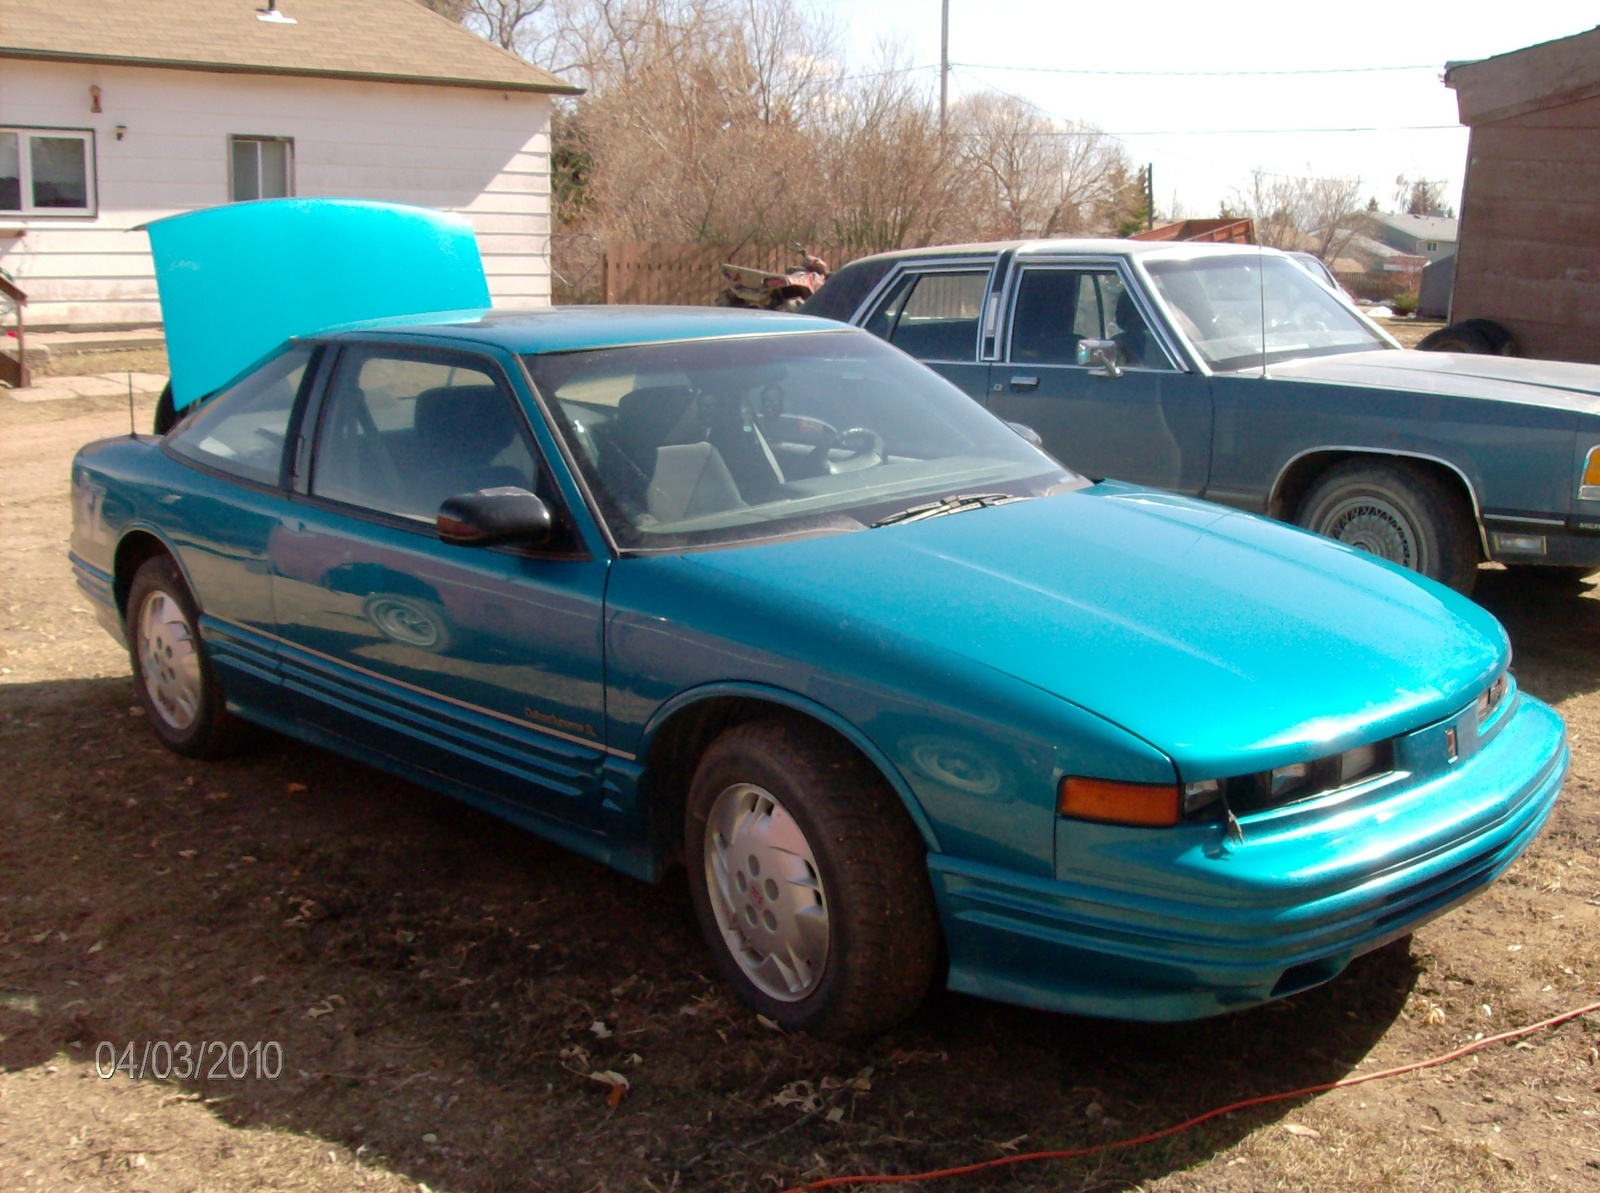 1994 Oldsmobile Cutlass Supreme 2 Dr Special Edition Coupe picture, exterior